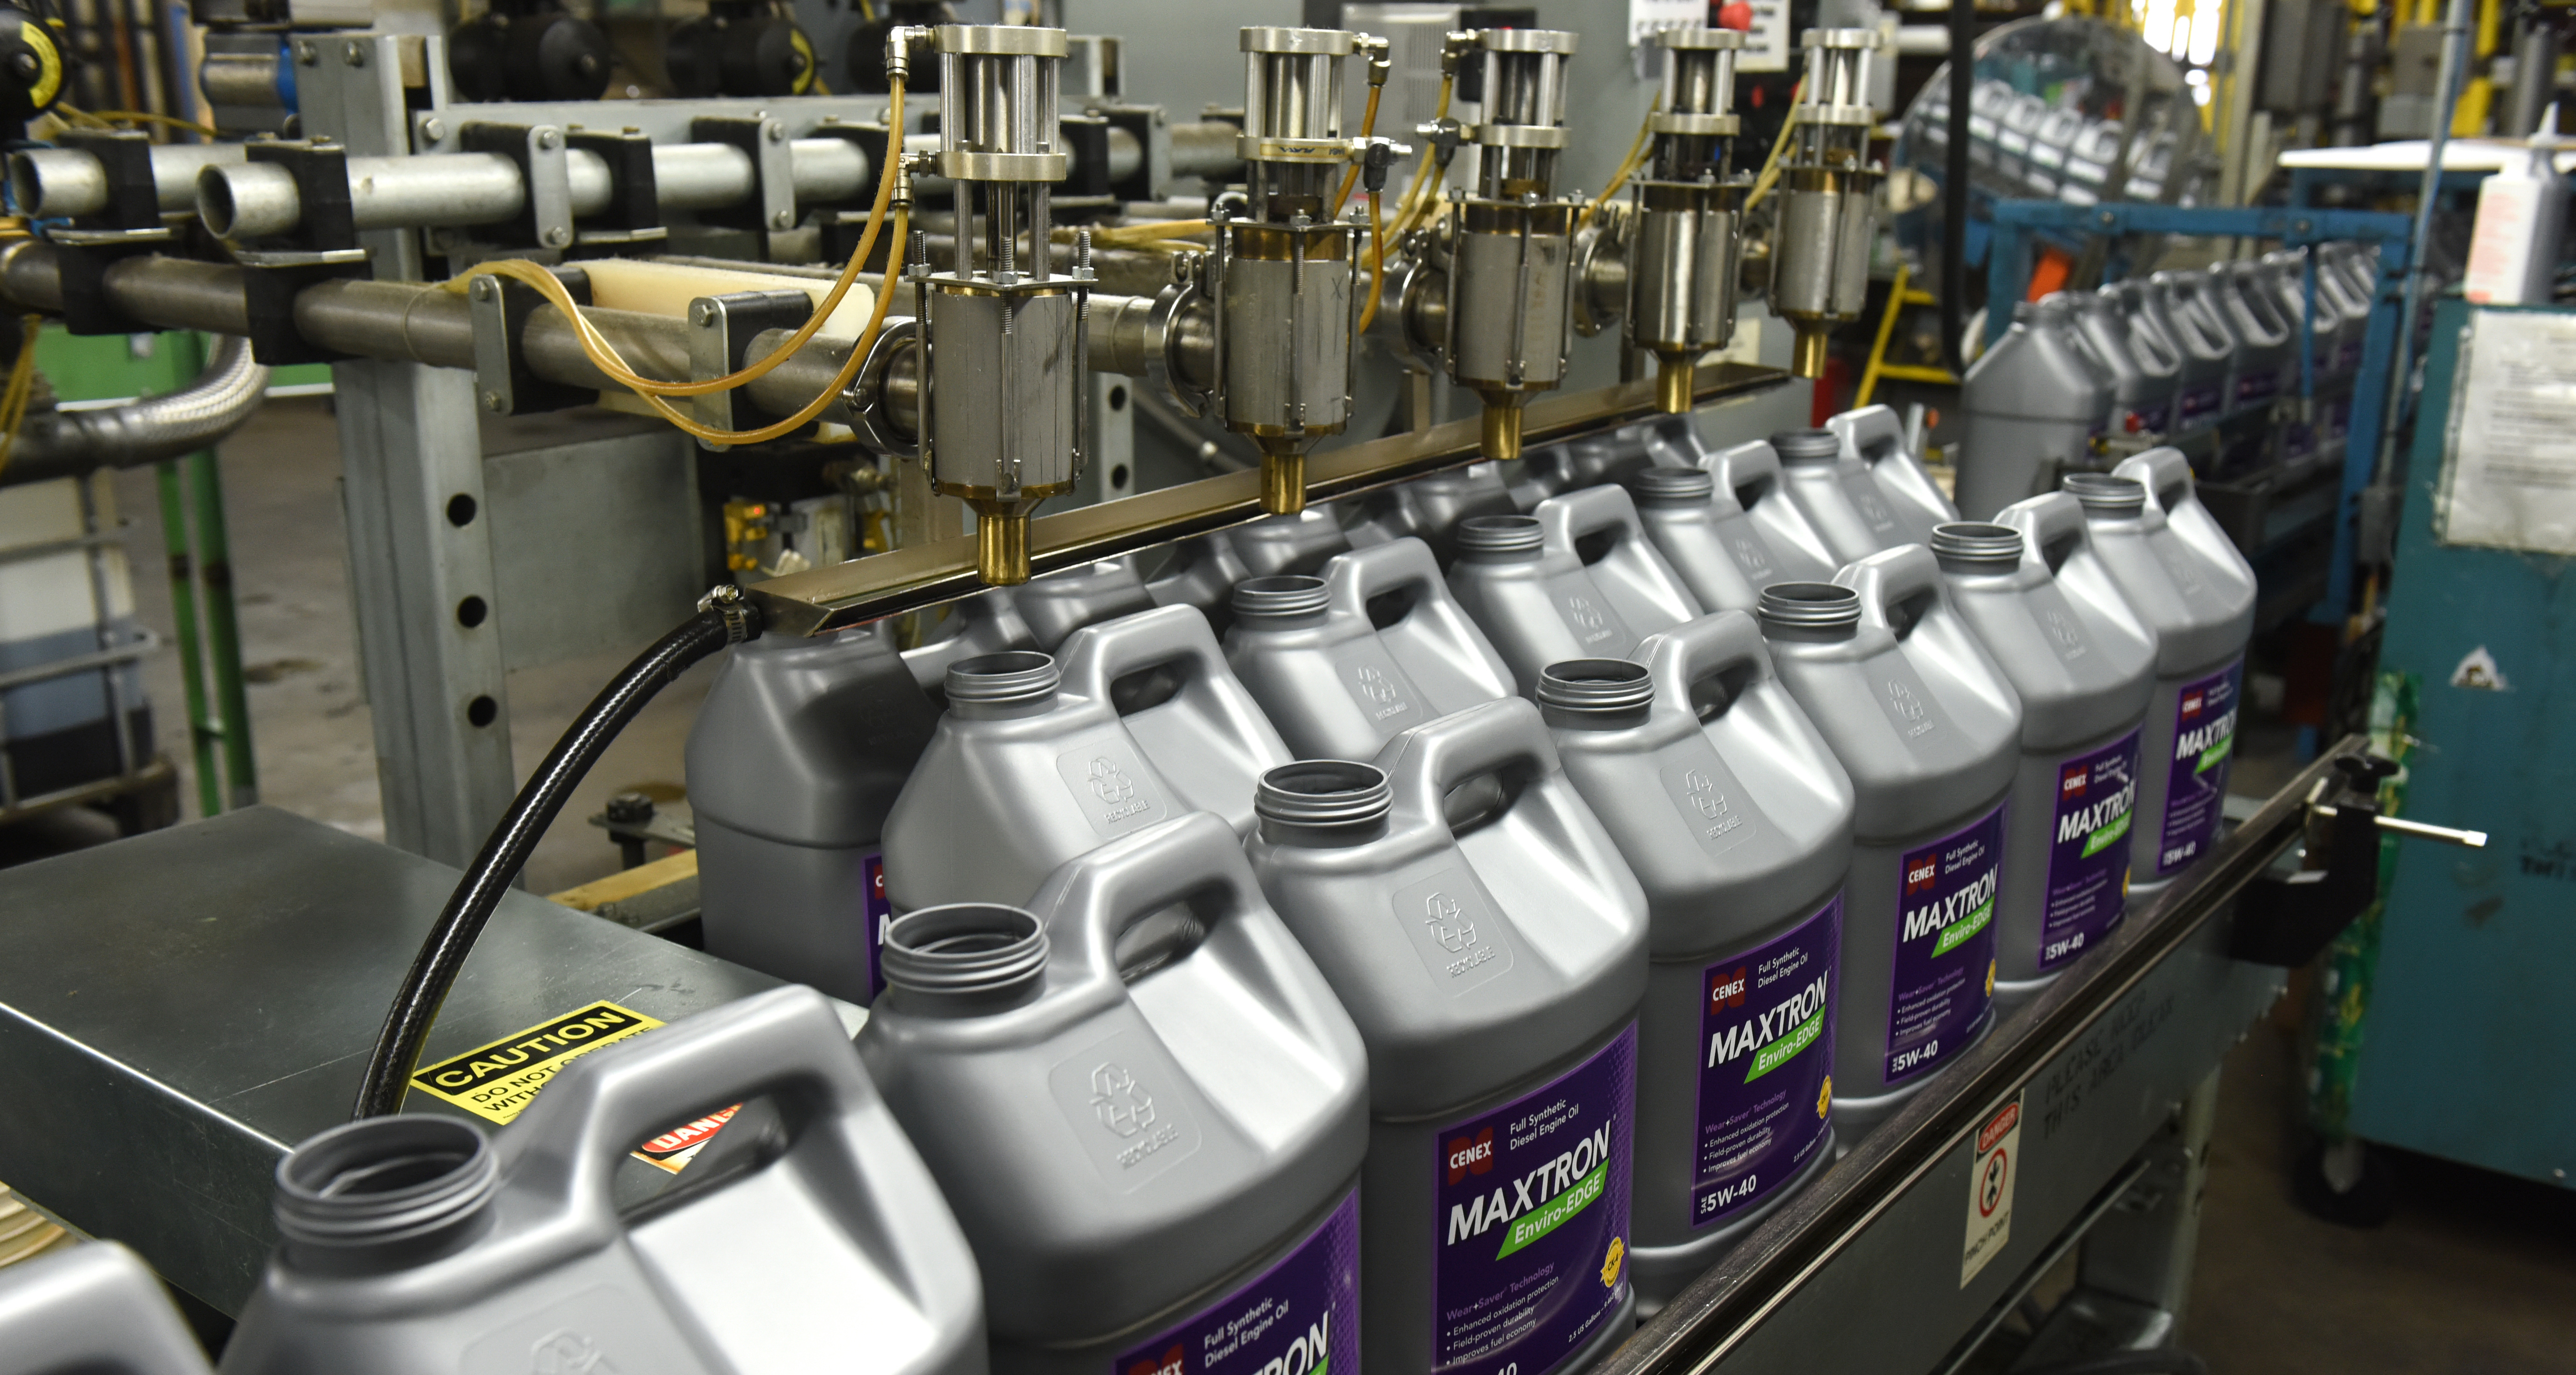 filling diesel engine oil jugs